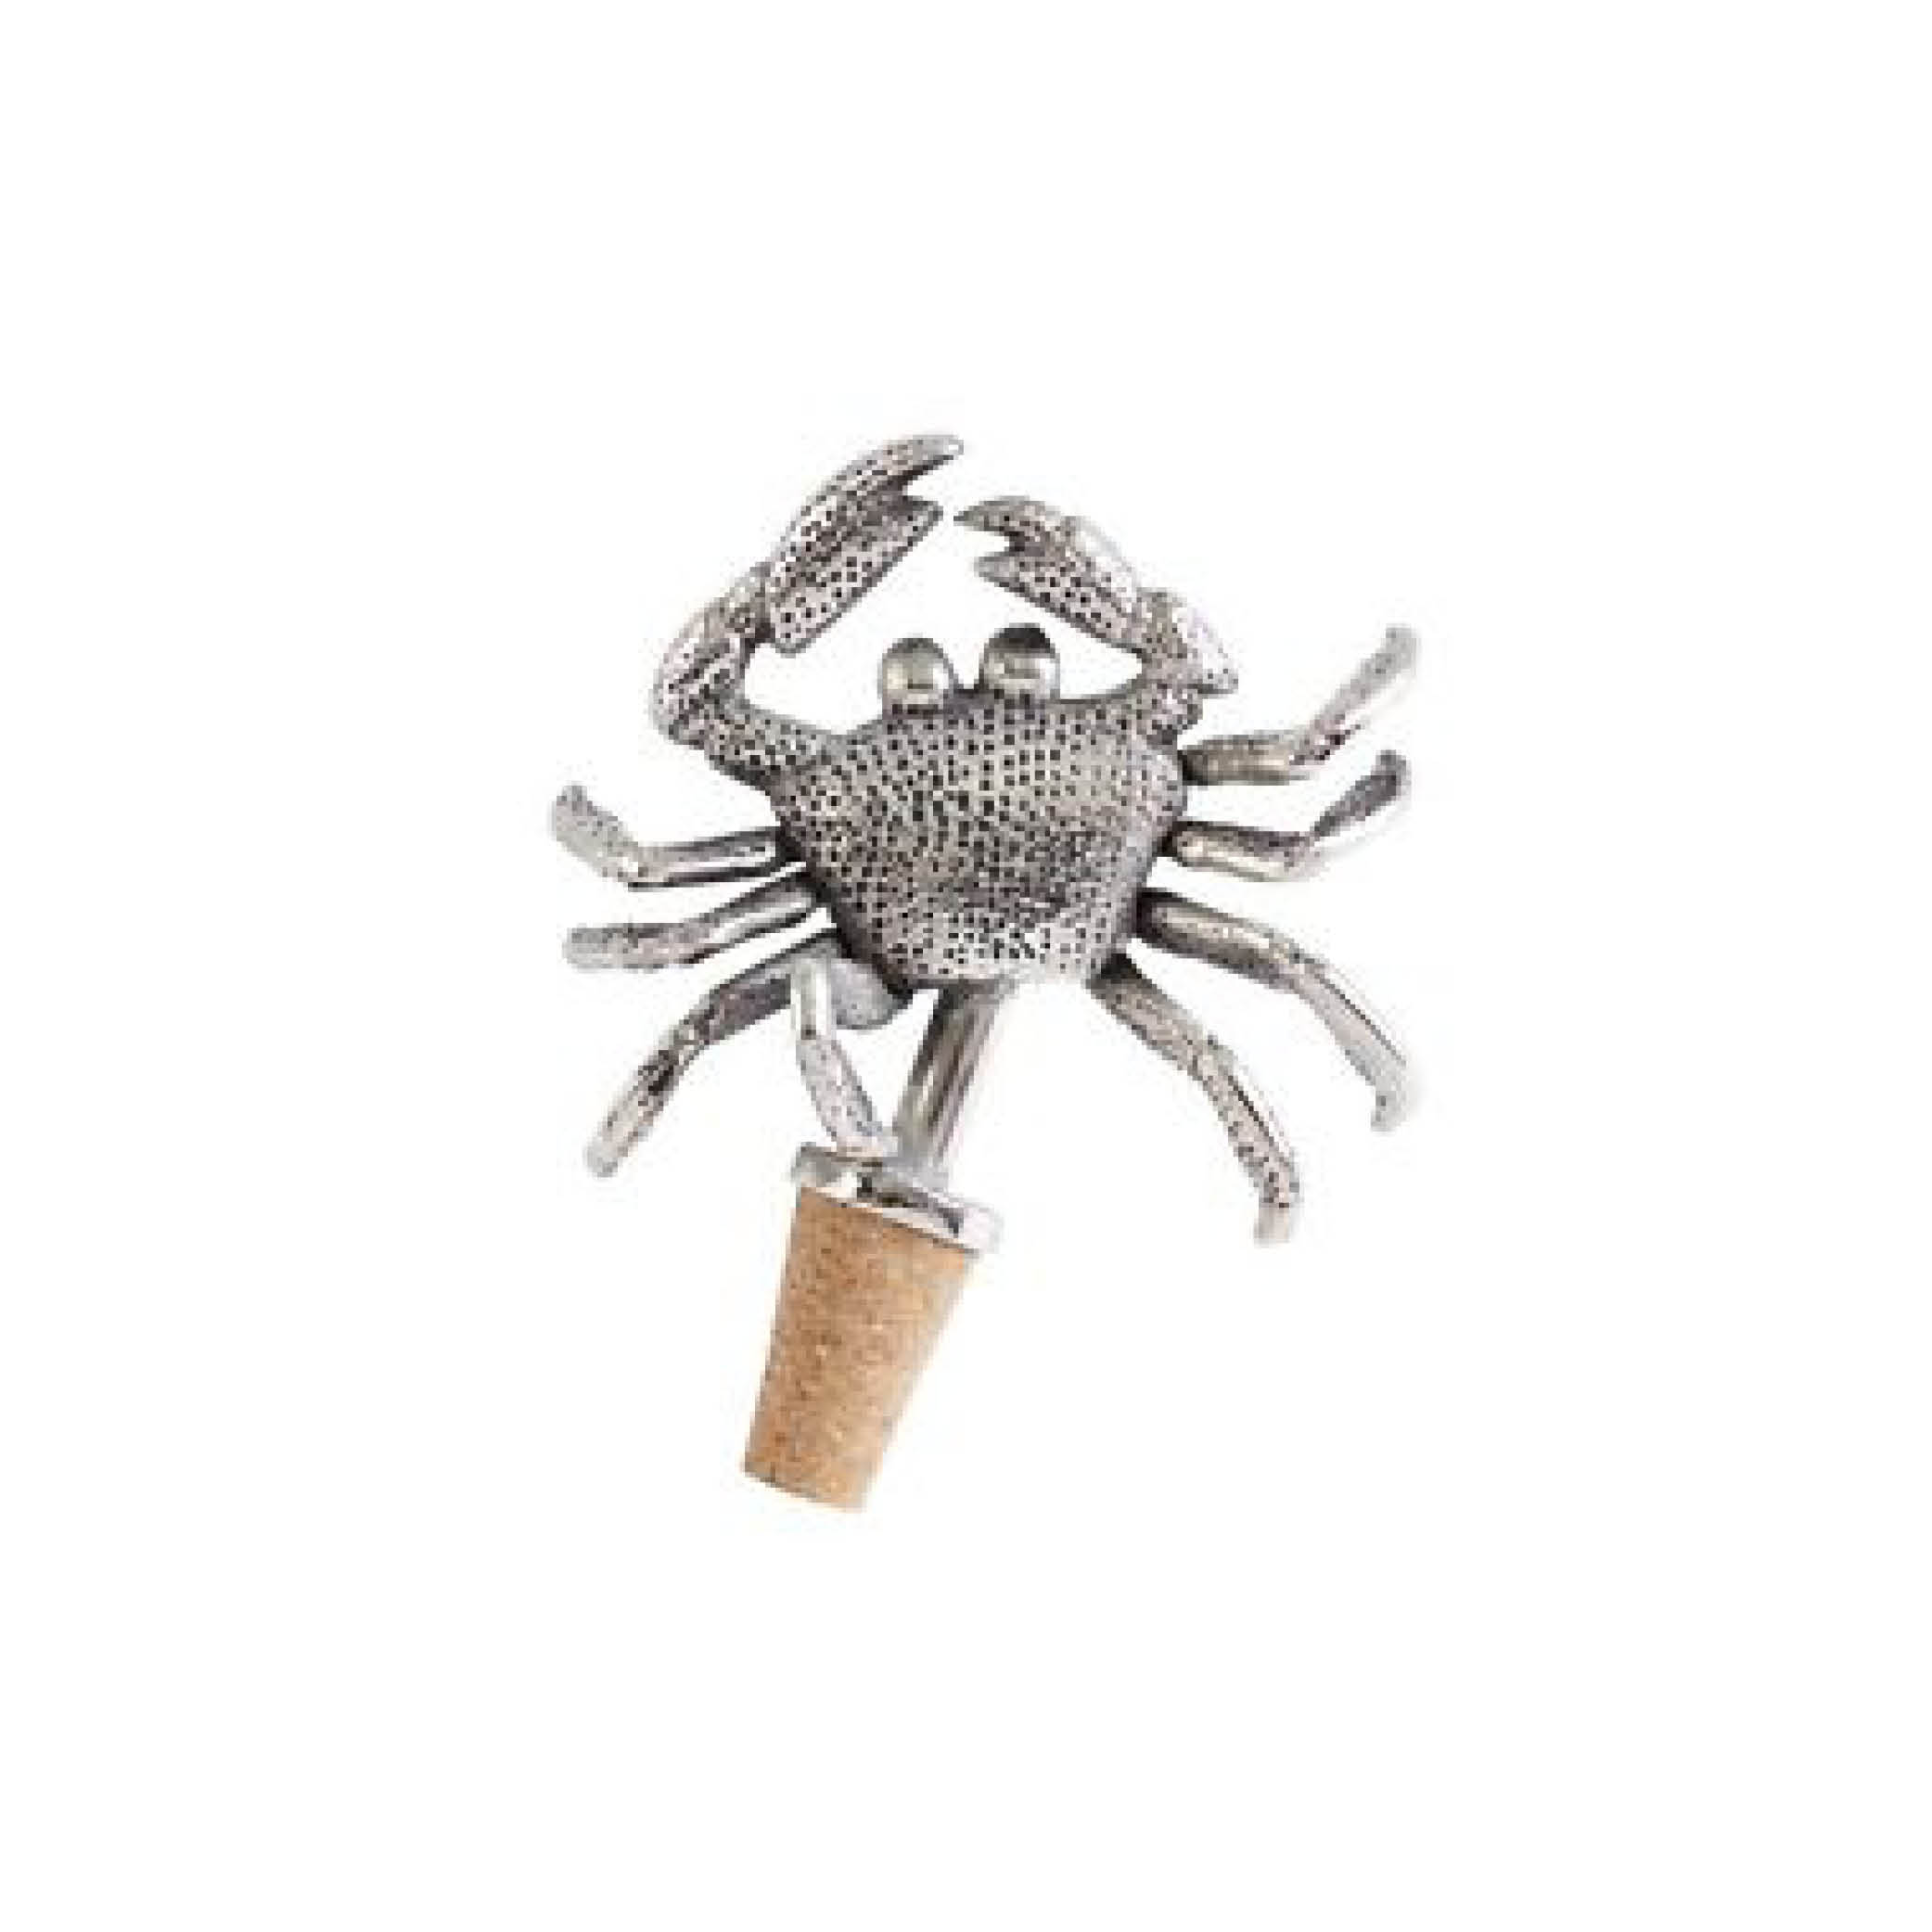 Crab Bottle Topper $15.95   Wants 1 Has 0 Needs 1